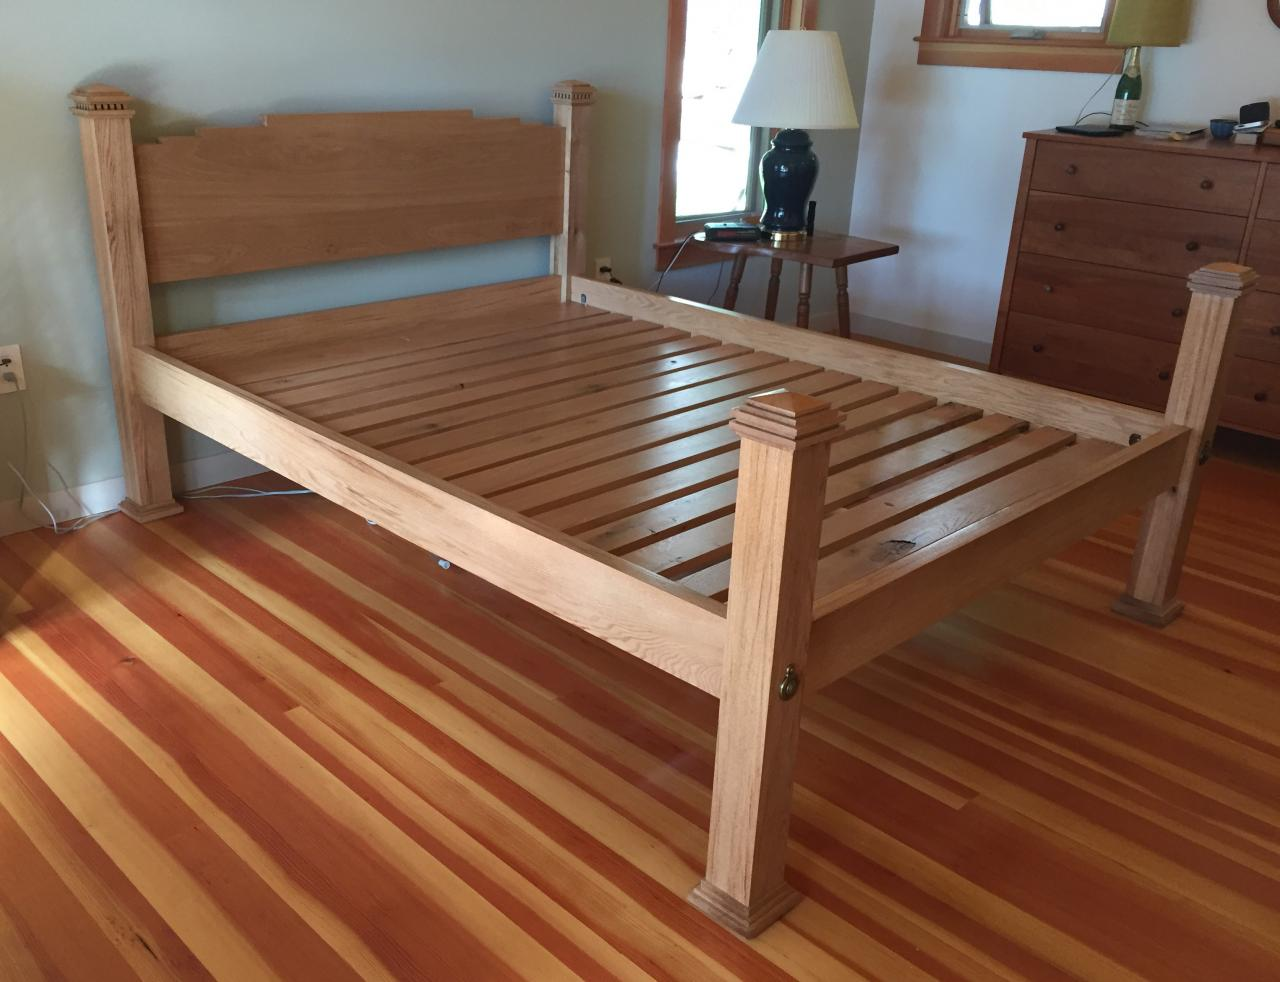 Bed with slats for mattress